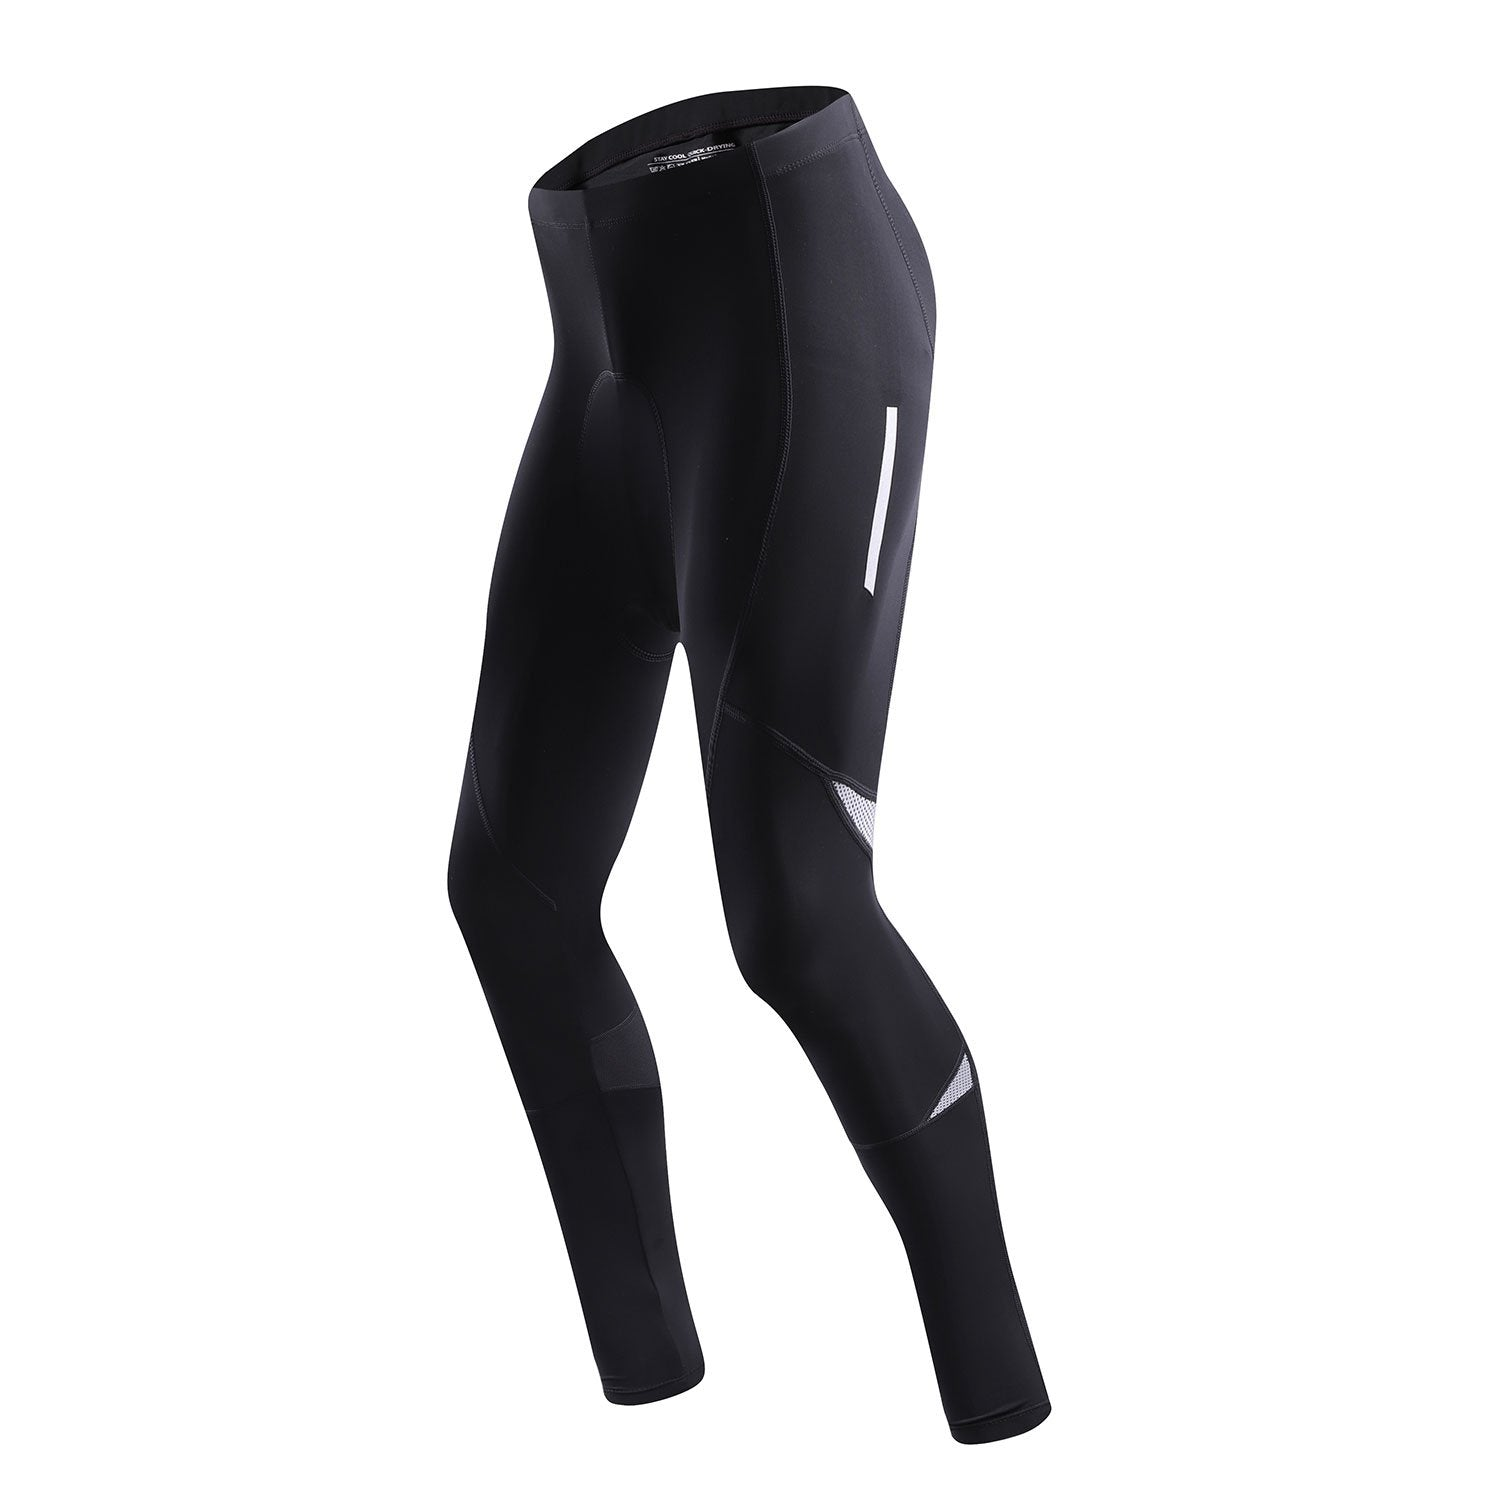 Men's Silicone Cushion Reflective Cycling Trousers